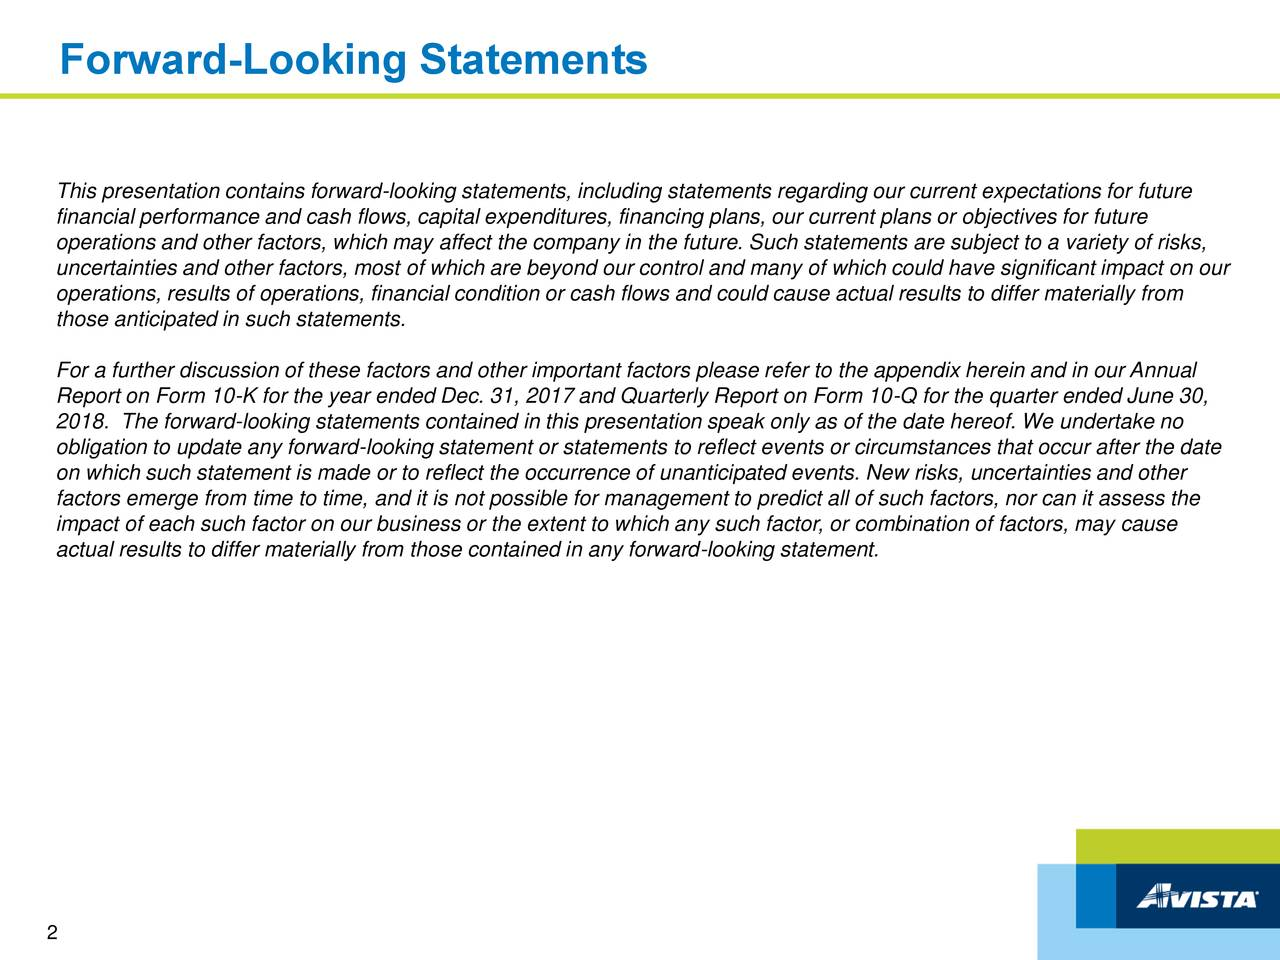 This presentation contains forward-looking statements, including statements regarding our current expectations for future financial performance and cash flows, capital expenditures, financing plans, our current plans or objectives for future operations and other factors, which may affect the company in the future. Such statements are subject to a variety of risks, uncertainties and other factors, most of which are beyond our control and many of which could have significant impact on our operations, results of operations, financial condition or cash flows and could cause actual results to differ materially from those anticipated in such statements. For a further discussion of these factors and other important factors please refer to the appendix herein and in our Annual Report on Form 10-K for the year ended Dec. 31, 2017 and Quarterly Report on Form 10-Q for the quarter ended June 30, 2018. The forward-looking statements contained in this presentation speak only as of the date hereof. We undertake no obligation to update any forward-looking statement or statements to reflect events or circumstances that occur after the date on which such statement is made or to reflect the occurrence of unanticipated events. New risks, uncertainties and other factors emerge from time to time, and it is not possible for management to predict all of such factors, nor can it assess the impact of each such factor on our business or the extent to which any such factor, or combination of factors, may cause actual results to differ materially from those contained in any forward-looking statement. 2